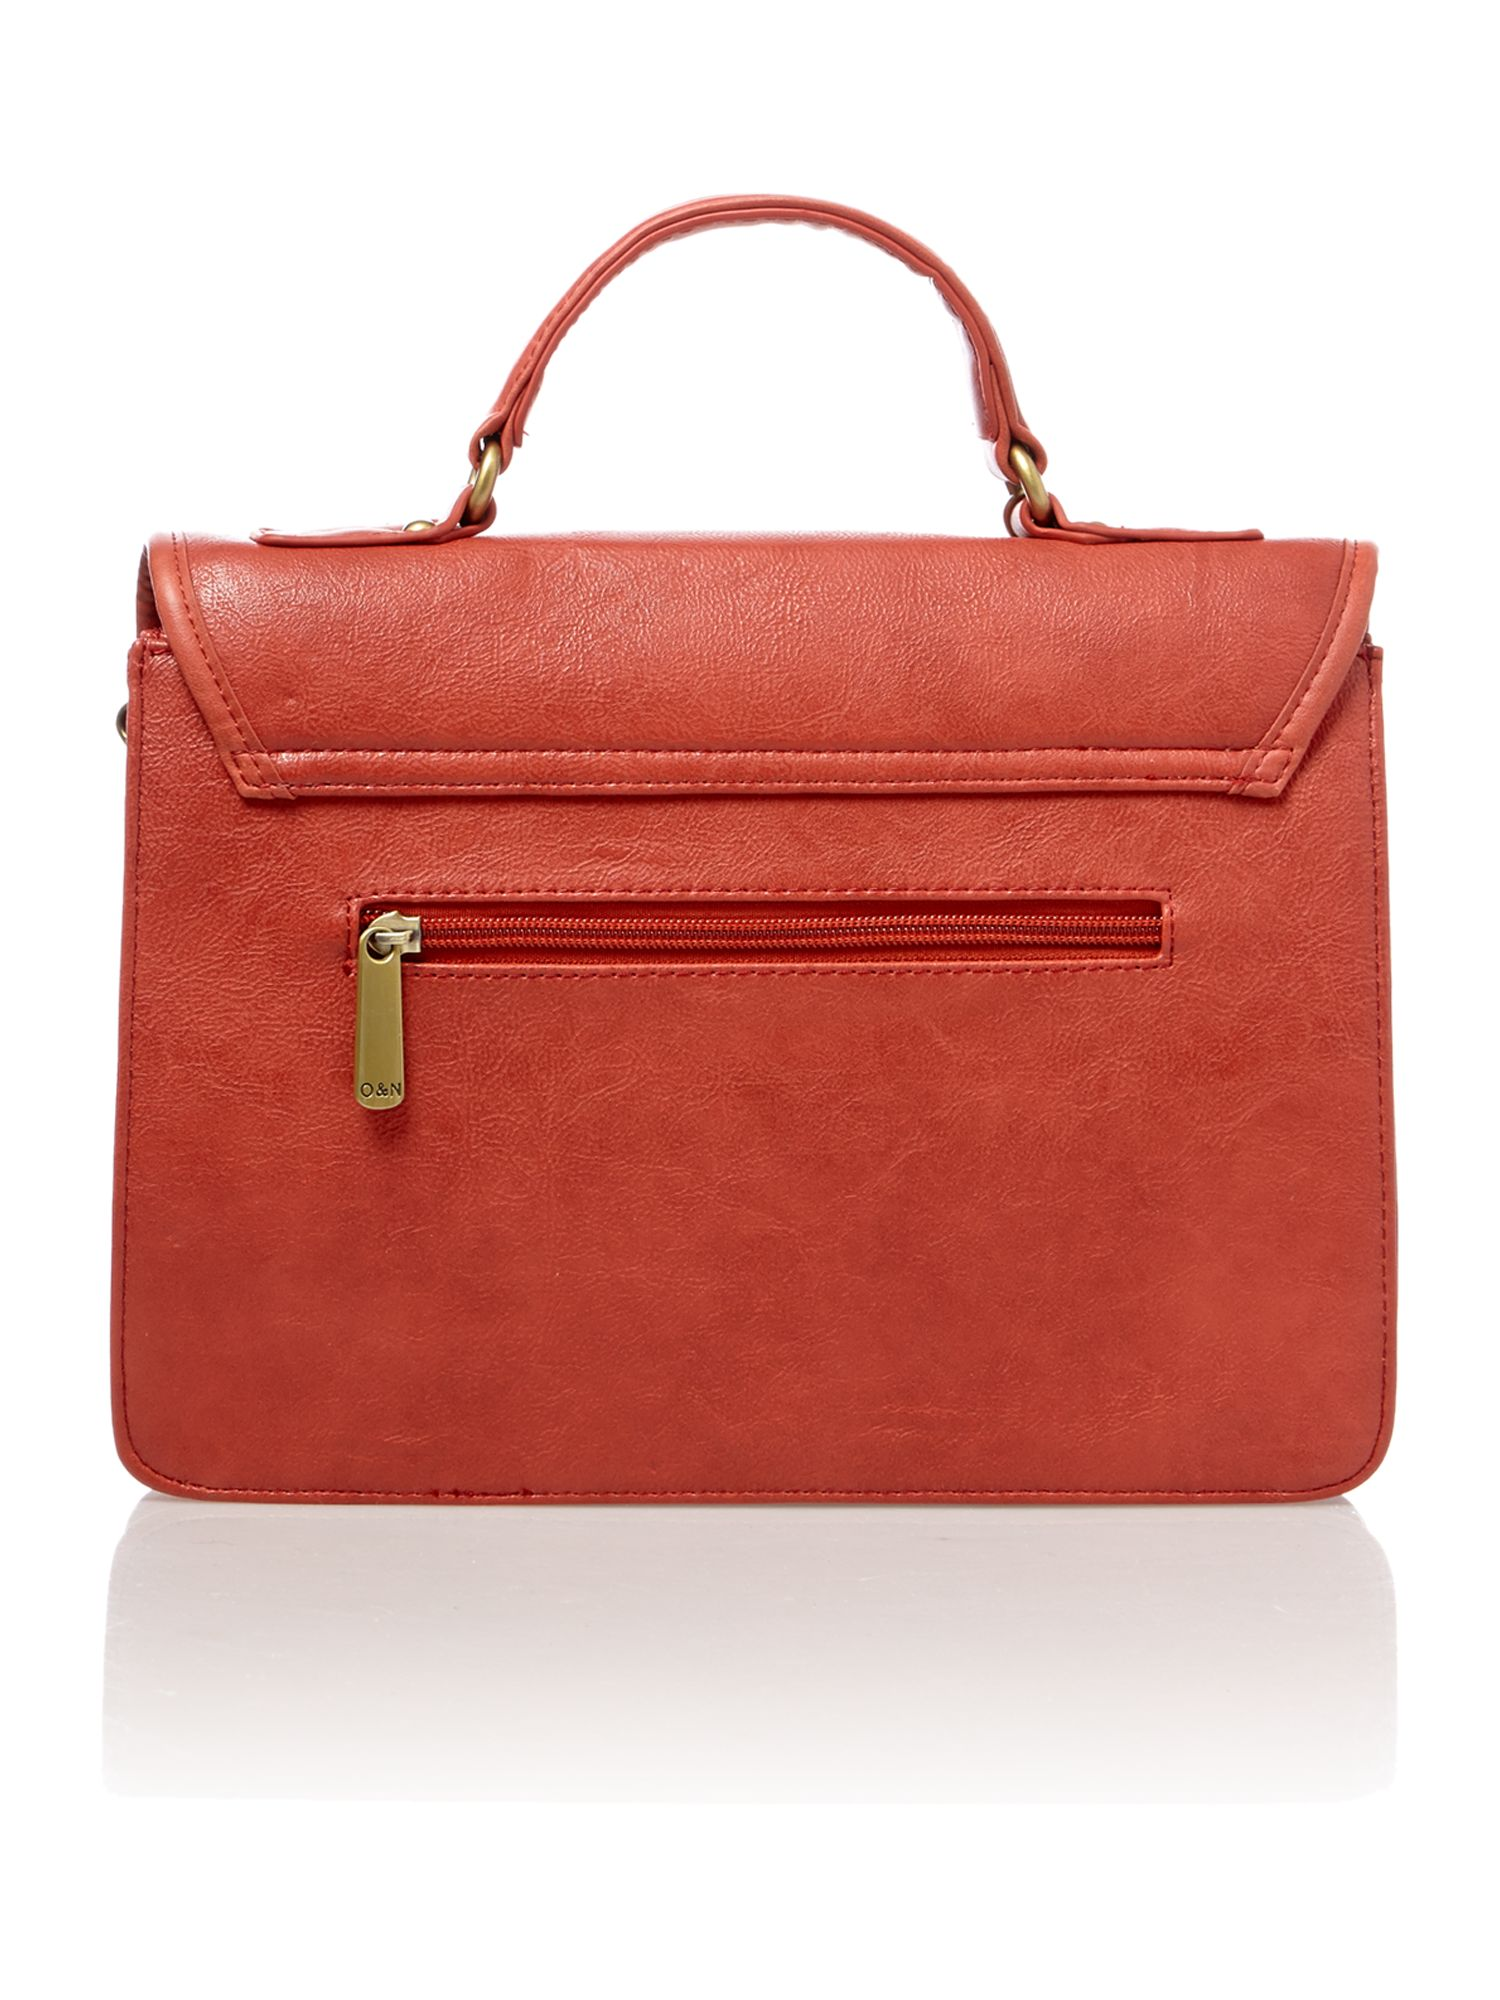 Lara red satchel bag